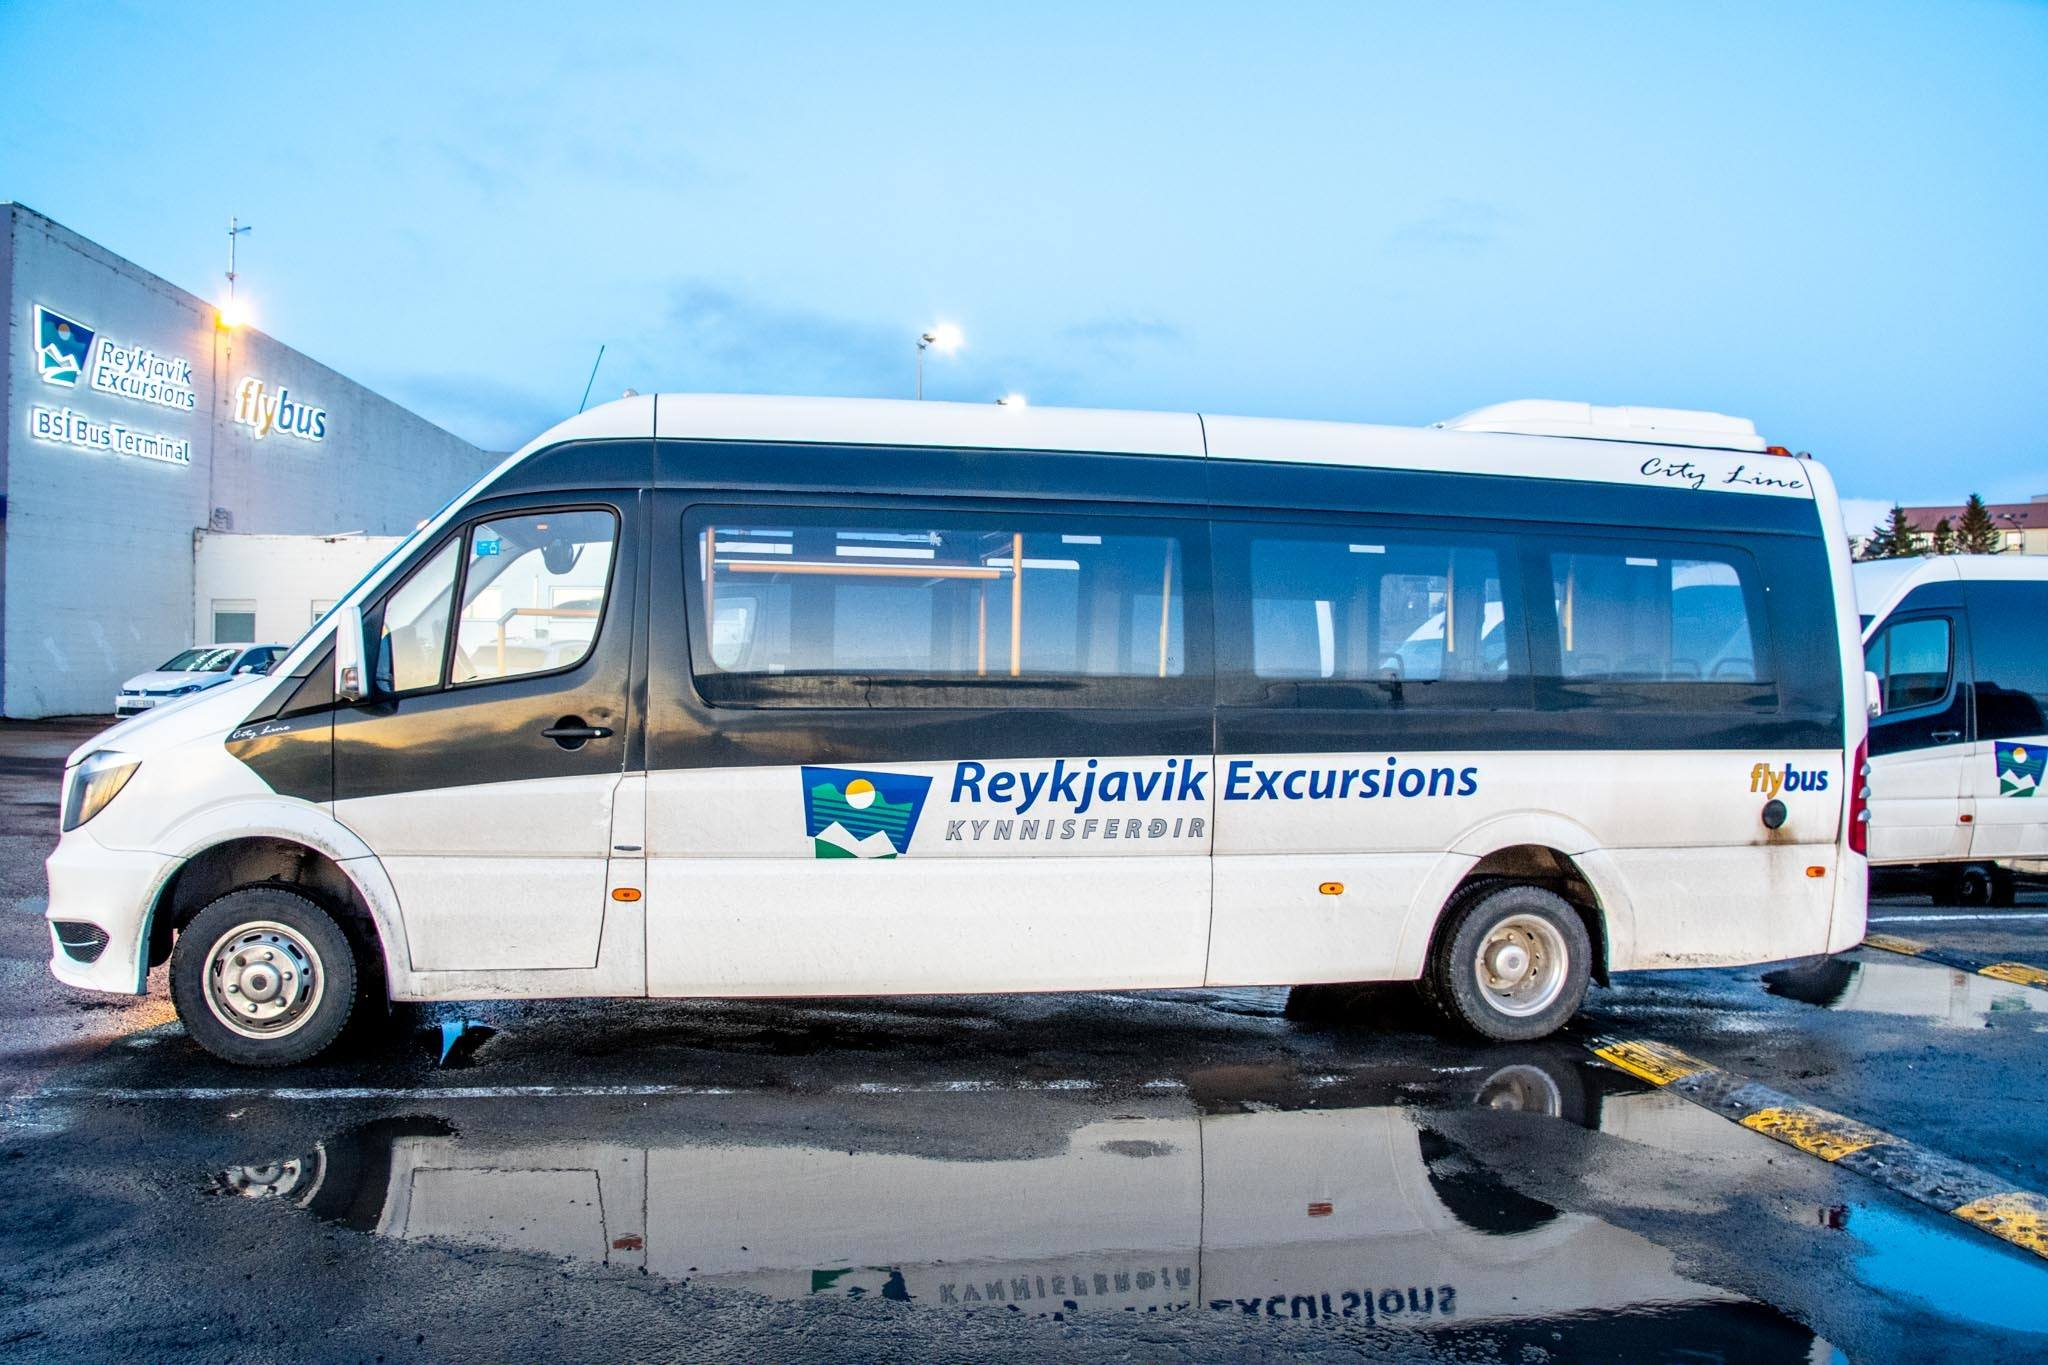 The Flybus+ pick-up service at the BSI Bus Terminal